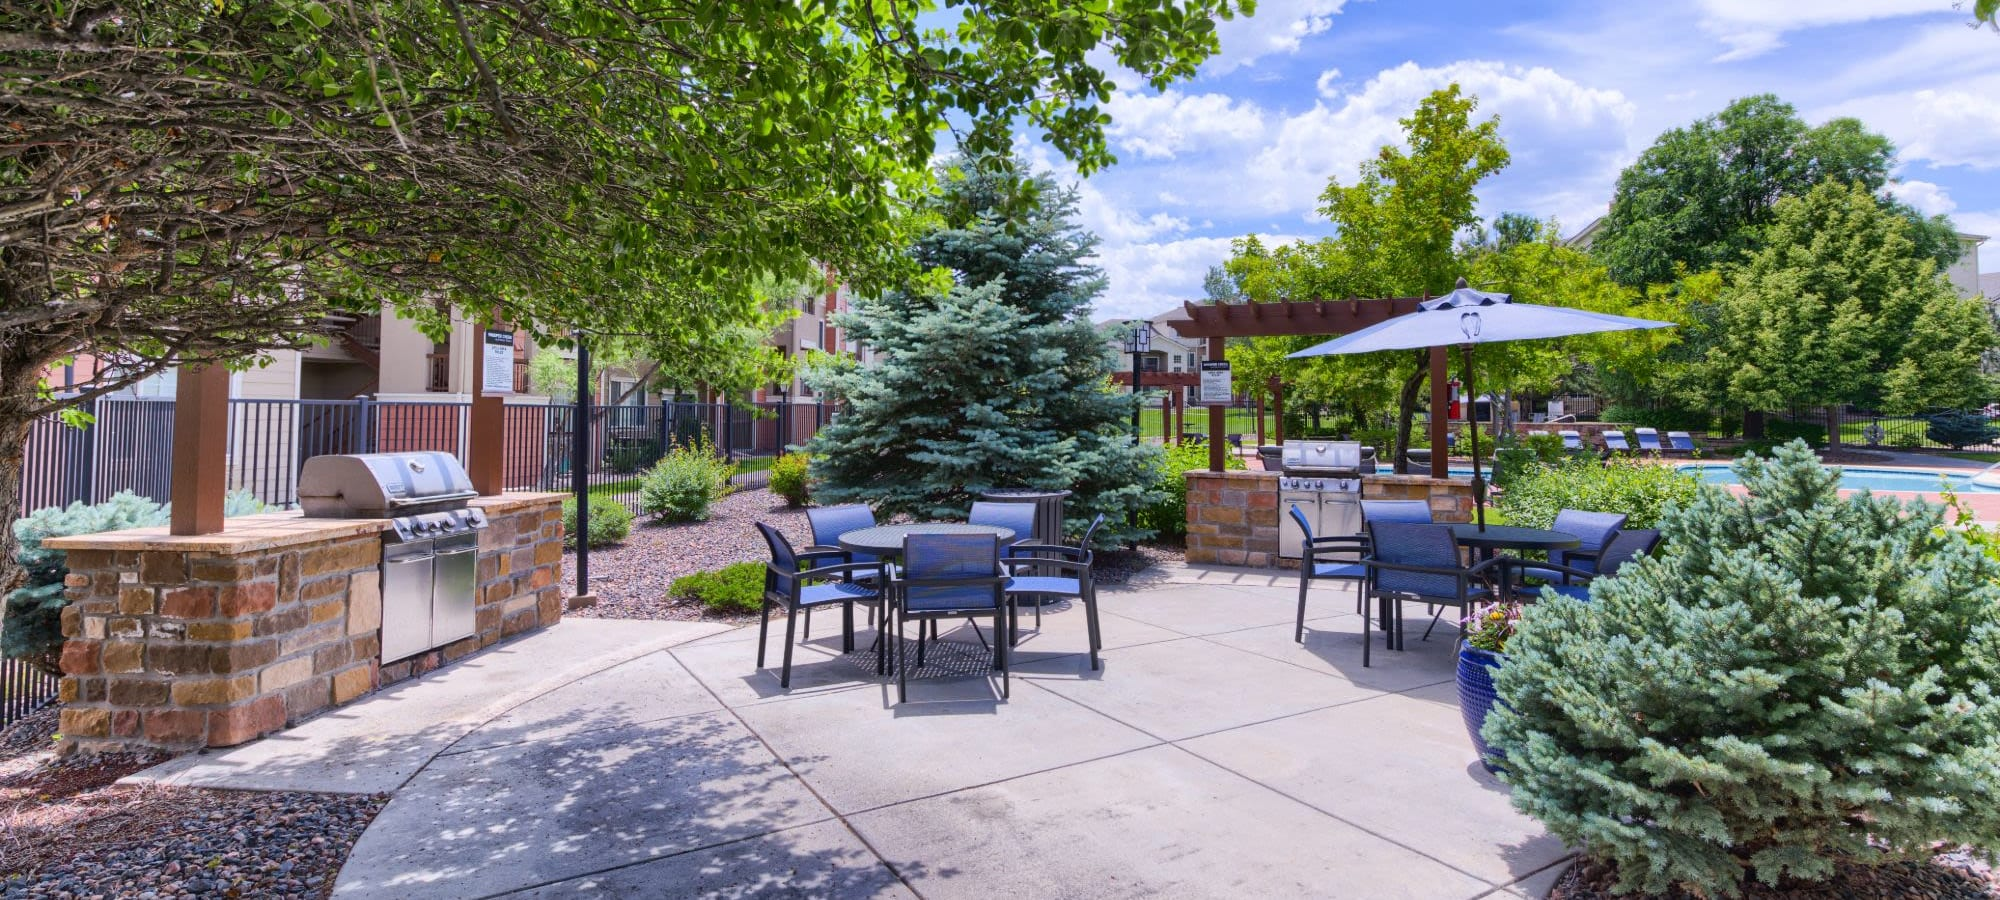 Apply to live at Whisper Creek Apartment Homes in Lakewood, Colorado